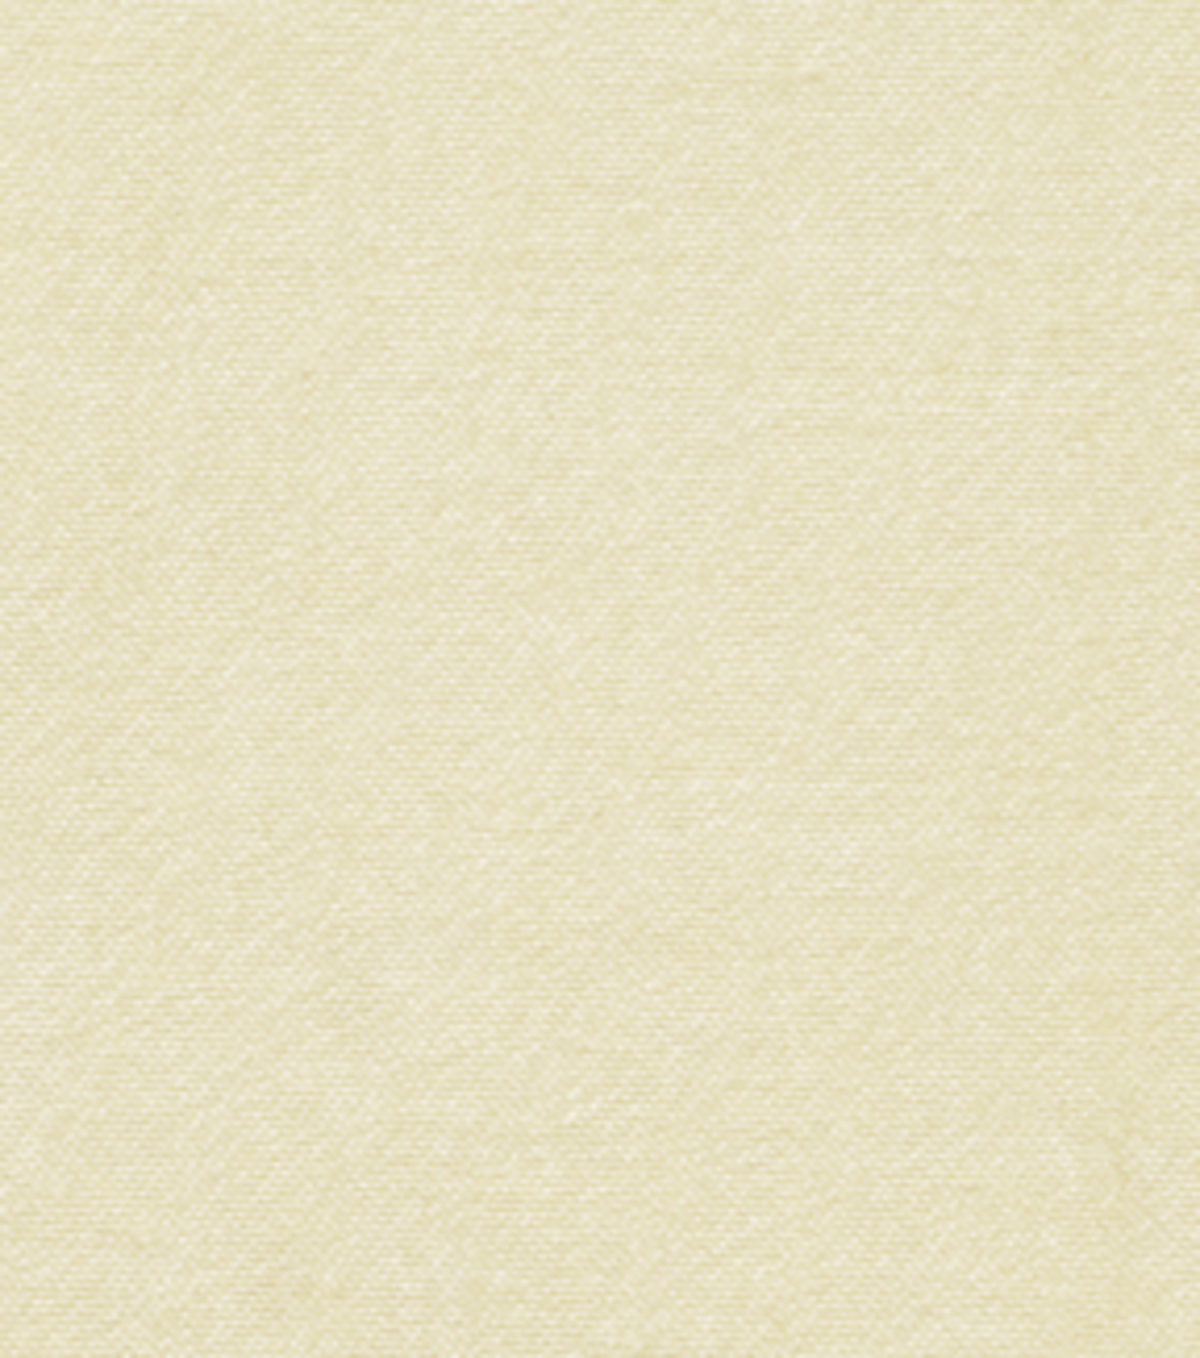 Home Decor 8\u0022x8\u0022 Fabric Swatch-Signature Series Antique Satin Custard